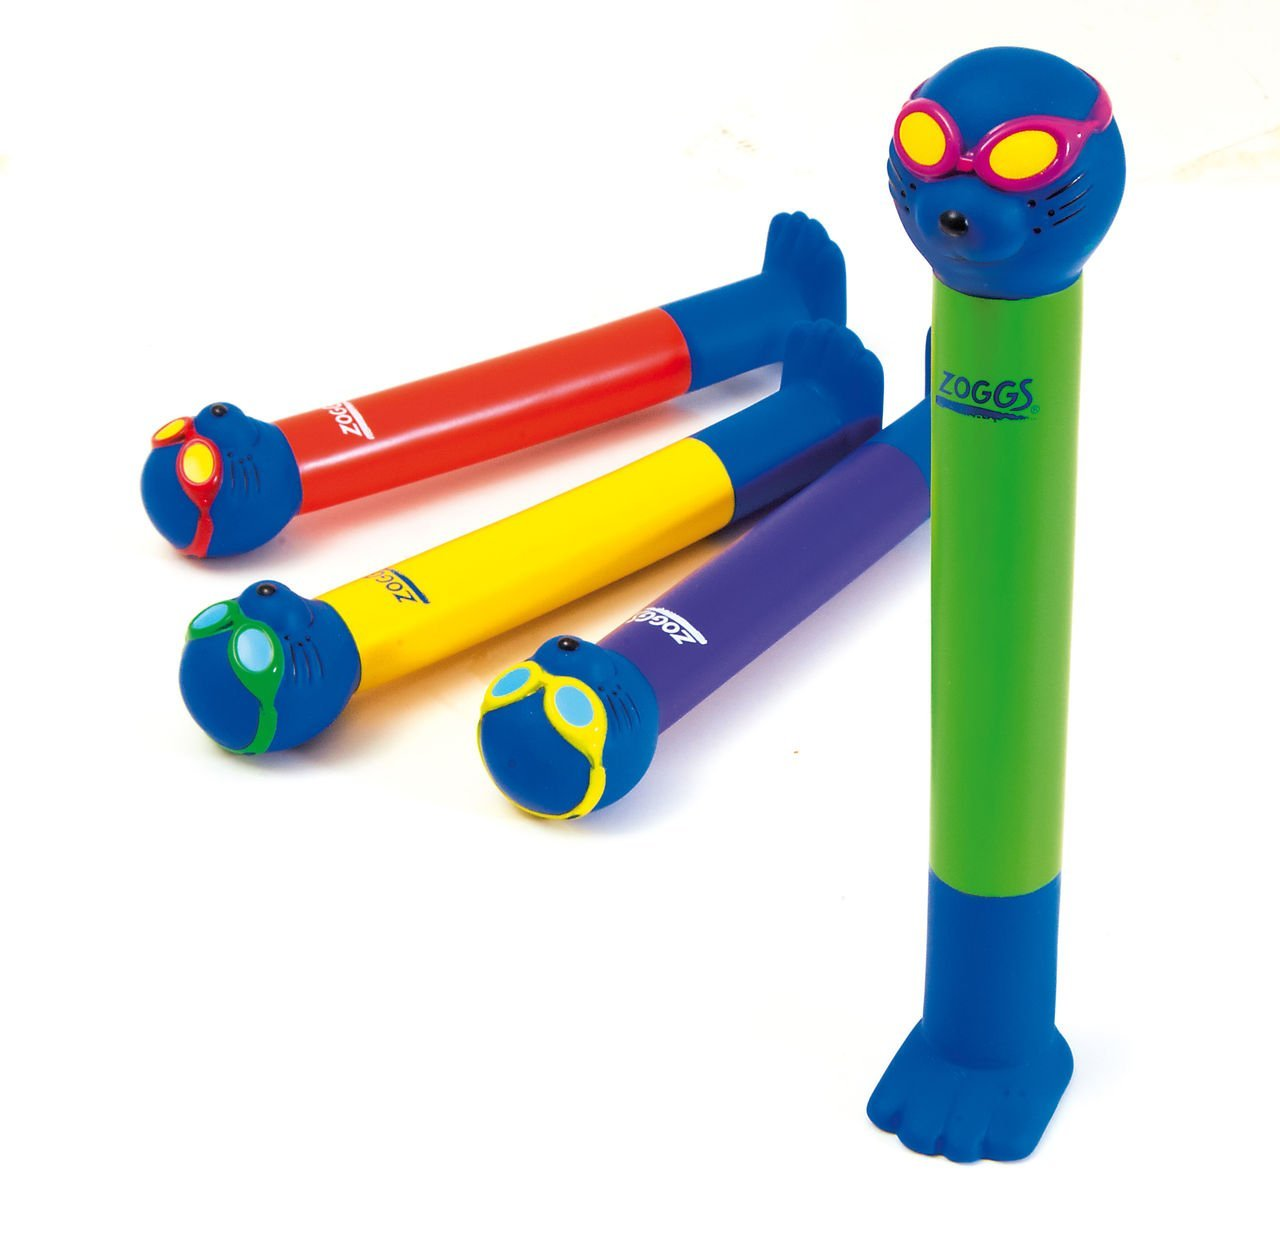 Zoggs Children's Safe Water Toy Dive Sticks in Bright Colours, Above 3 Year